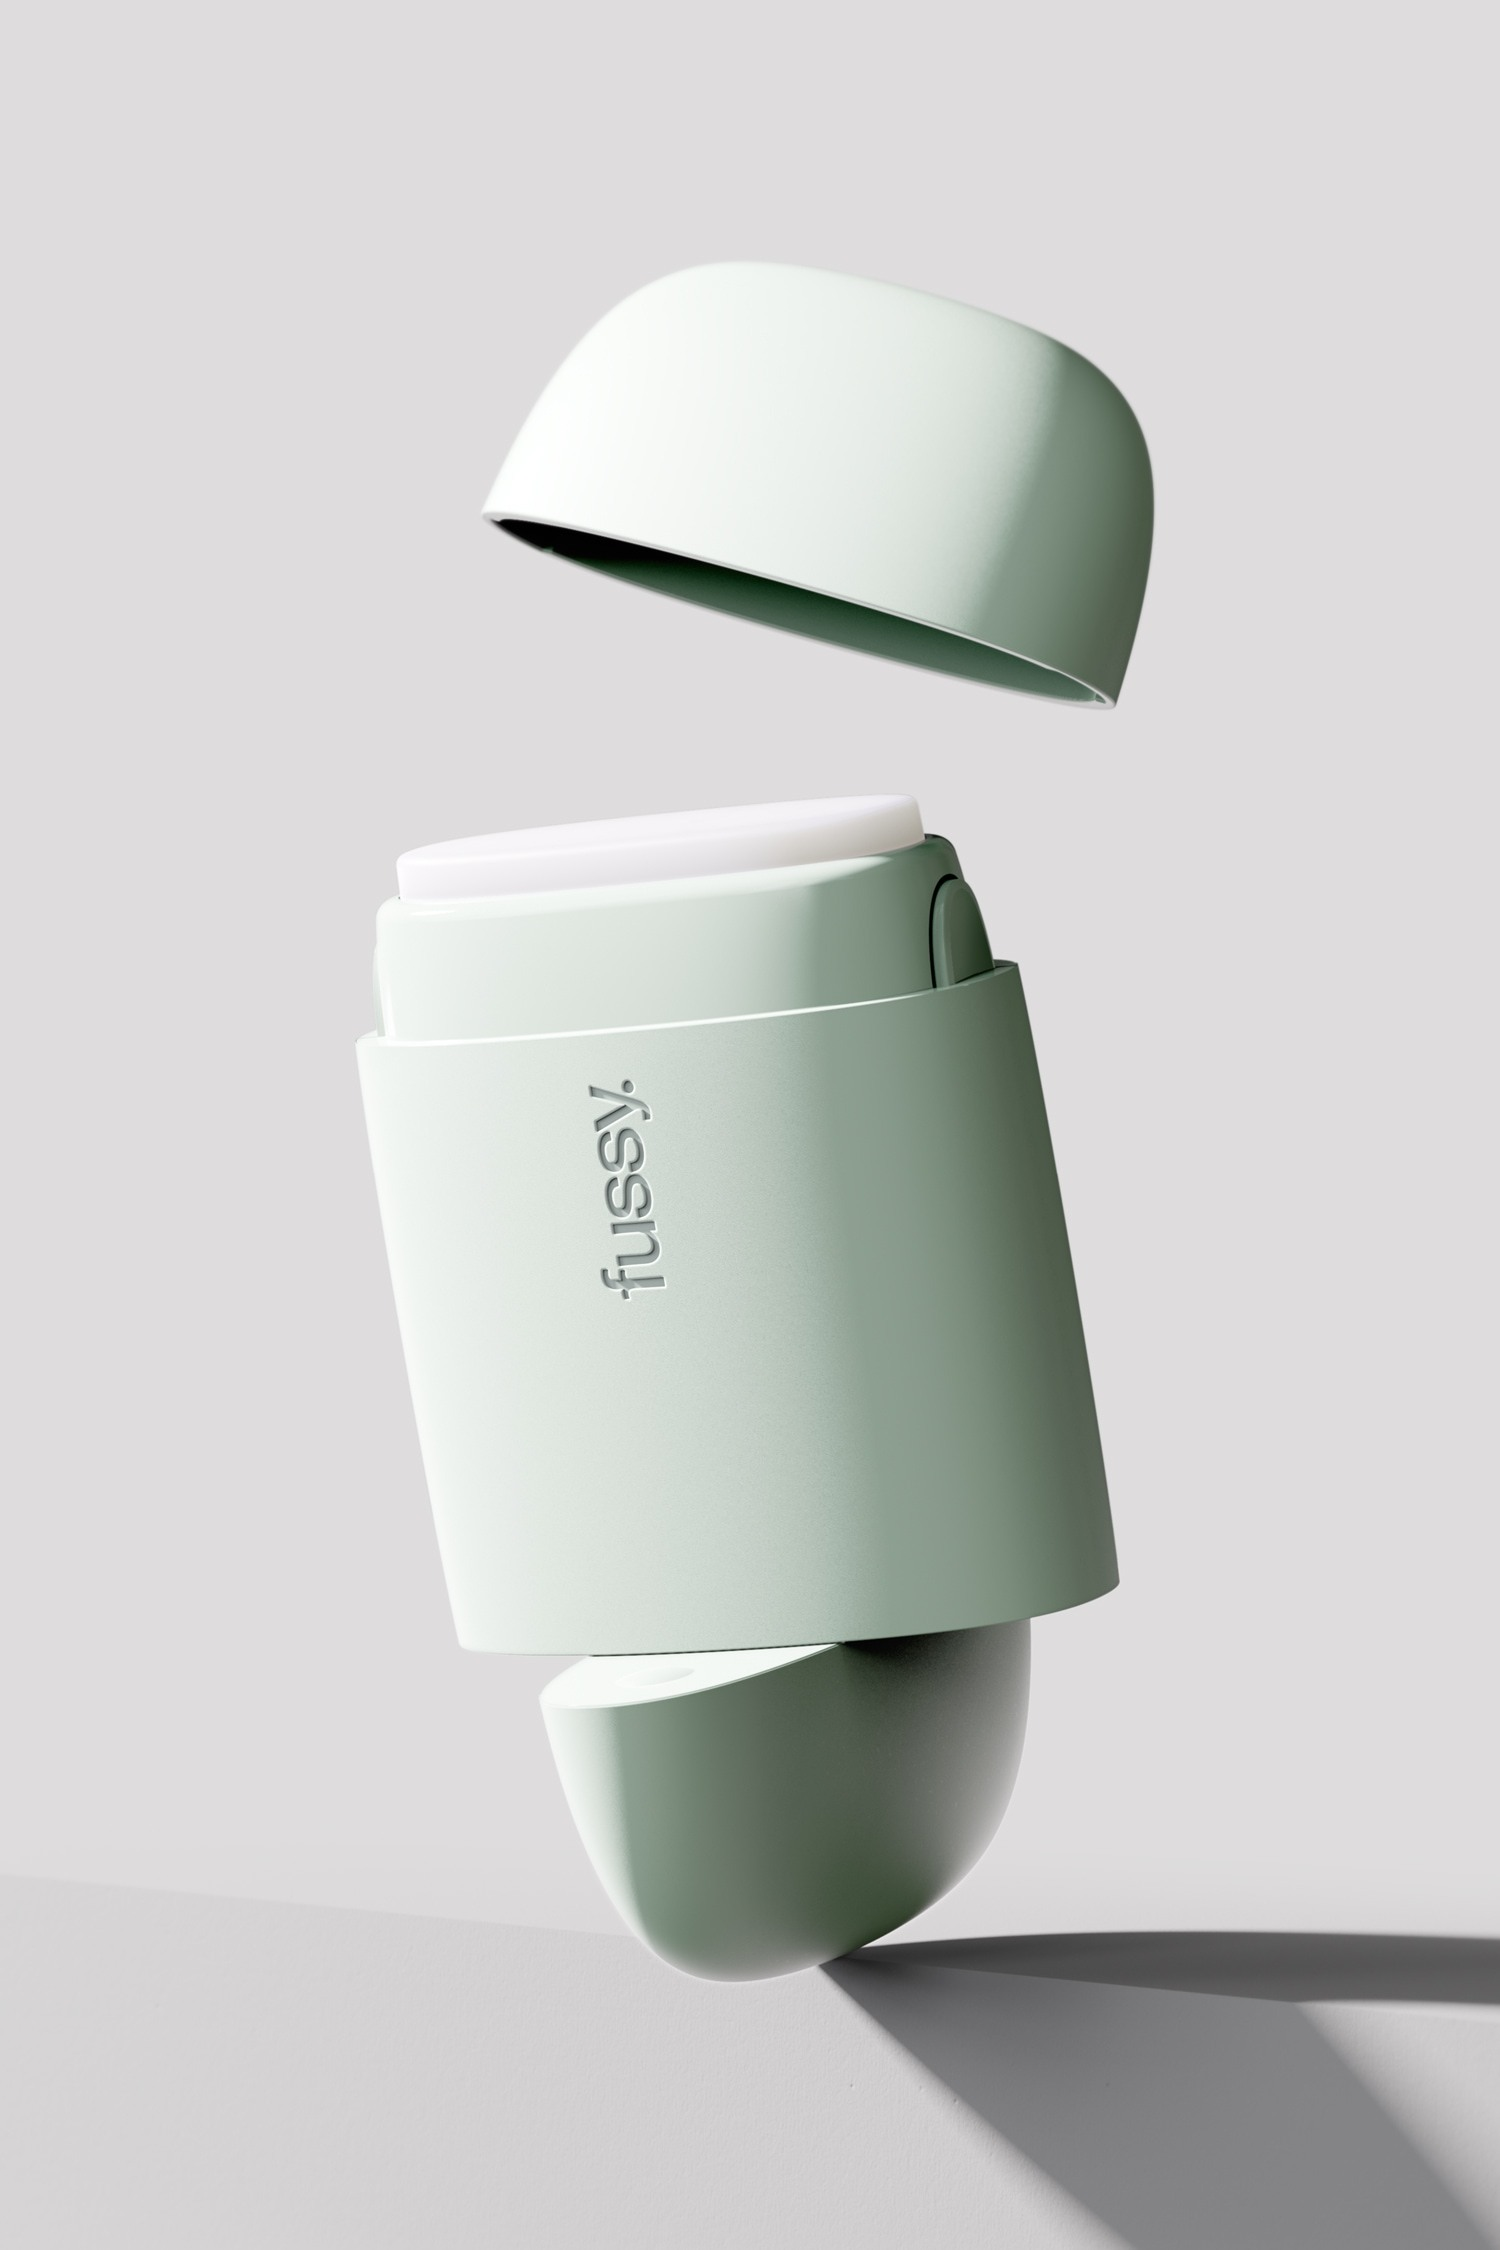 Blond-Design-Agency-Cosmetics-Packaging-Sustainable-Eco-Refillable-Deodorant-Fussy-11